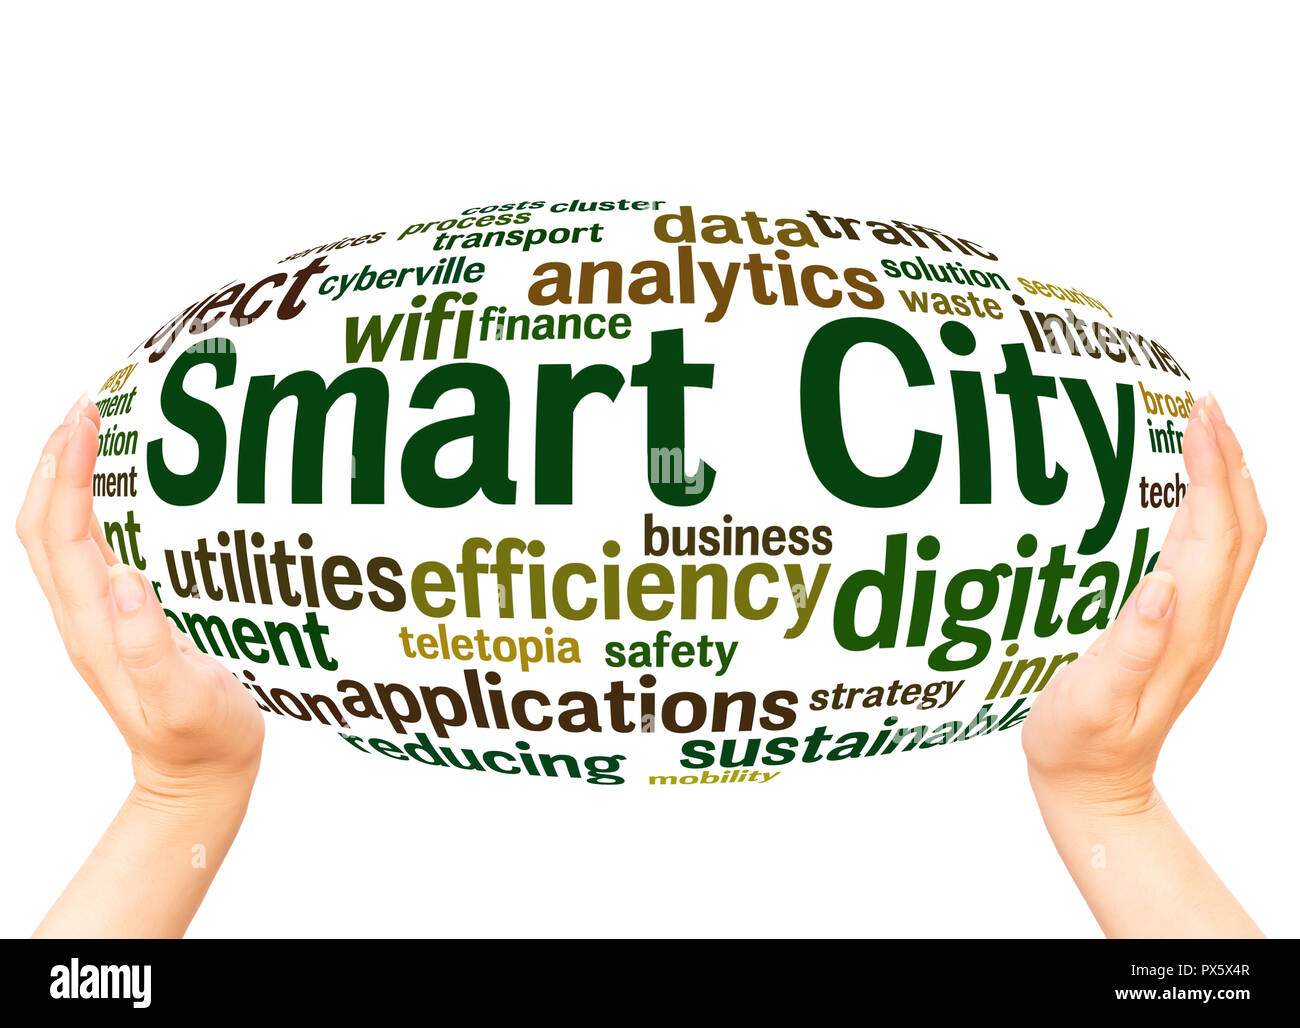 Smart City word cloud hand sphere concept on white background. - Stock Image